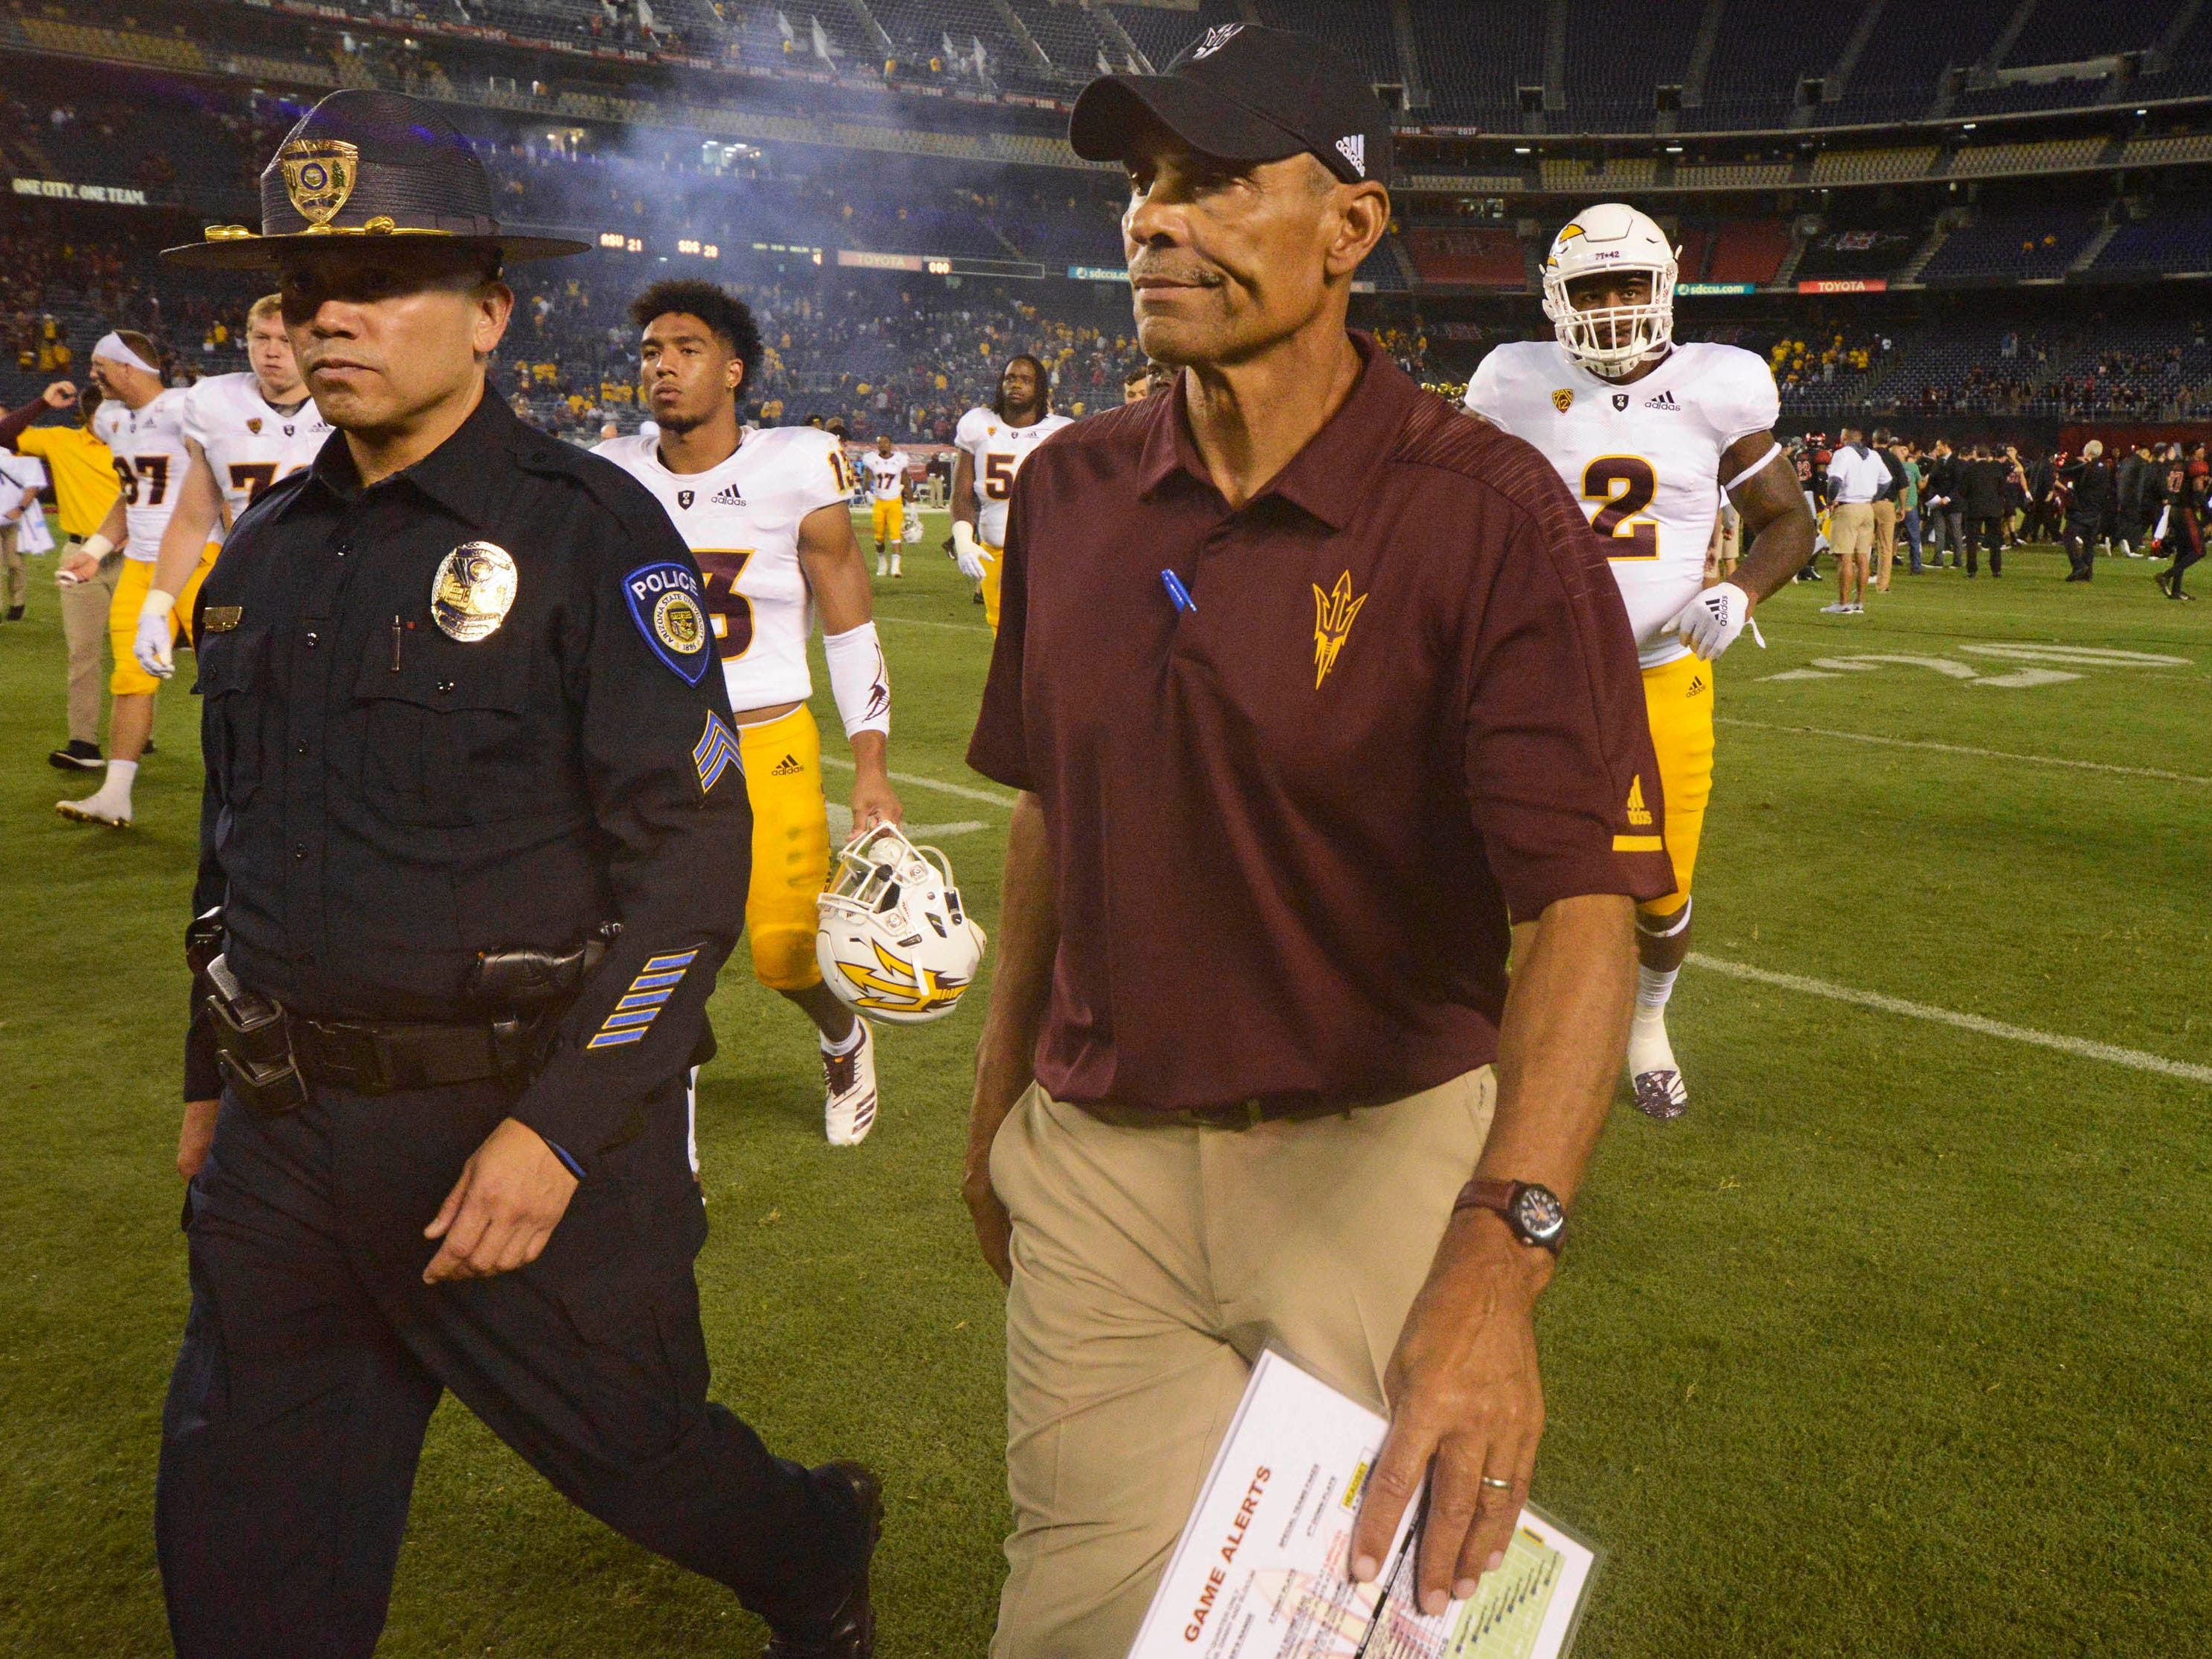 Sep 15, 2018; San Diego, CA, USA; Arizona State Sun Devils head coach Herm Edwards (right) reacts as he walks off the field following a 21-28 loss against the San Diego State Aztecs at SDCCU Stadium. Mandatory Credit: Jake Roth-USA TODAY Sports